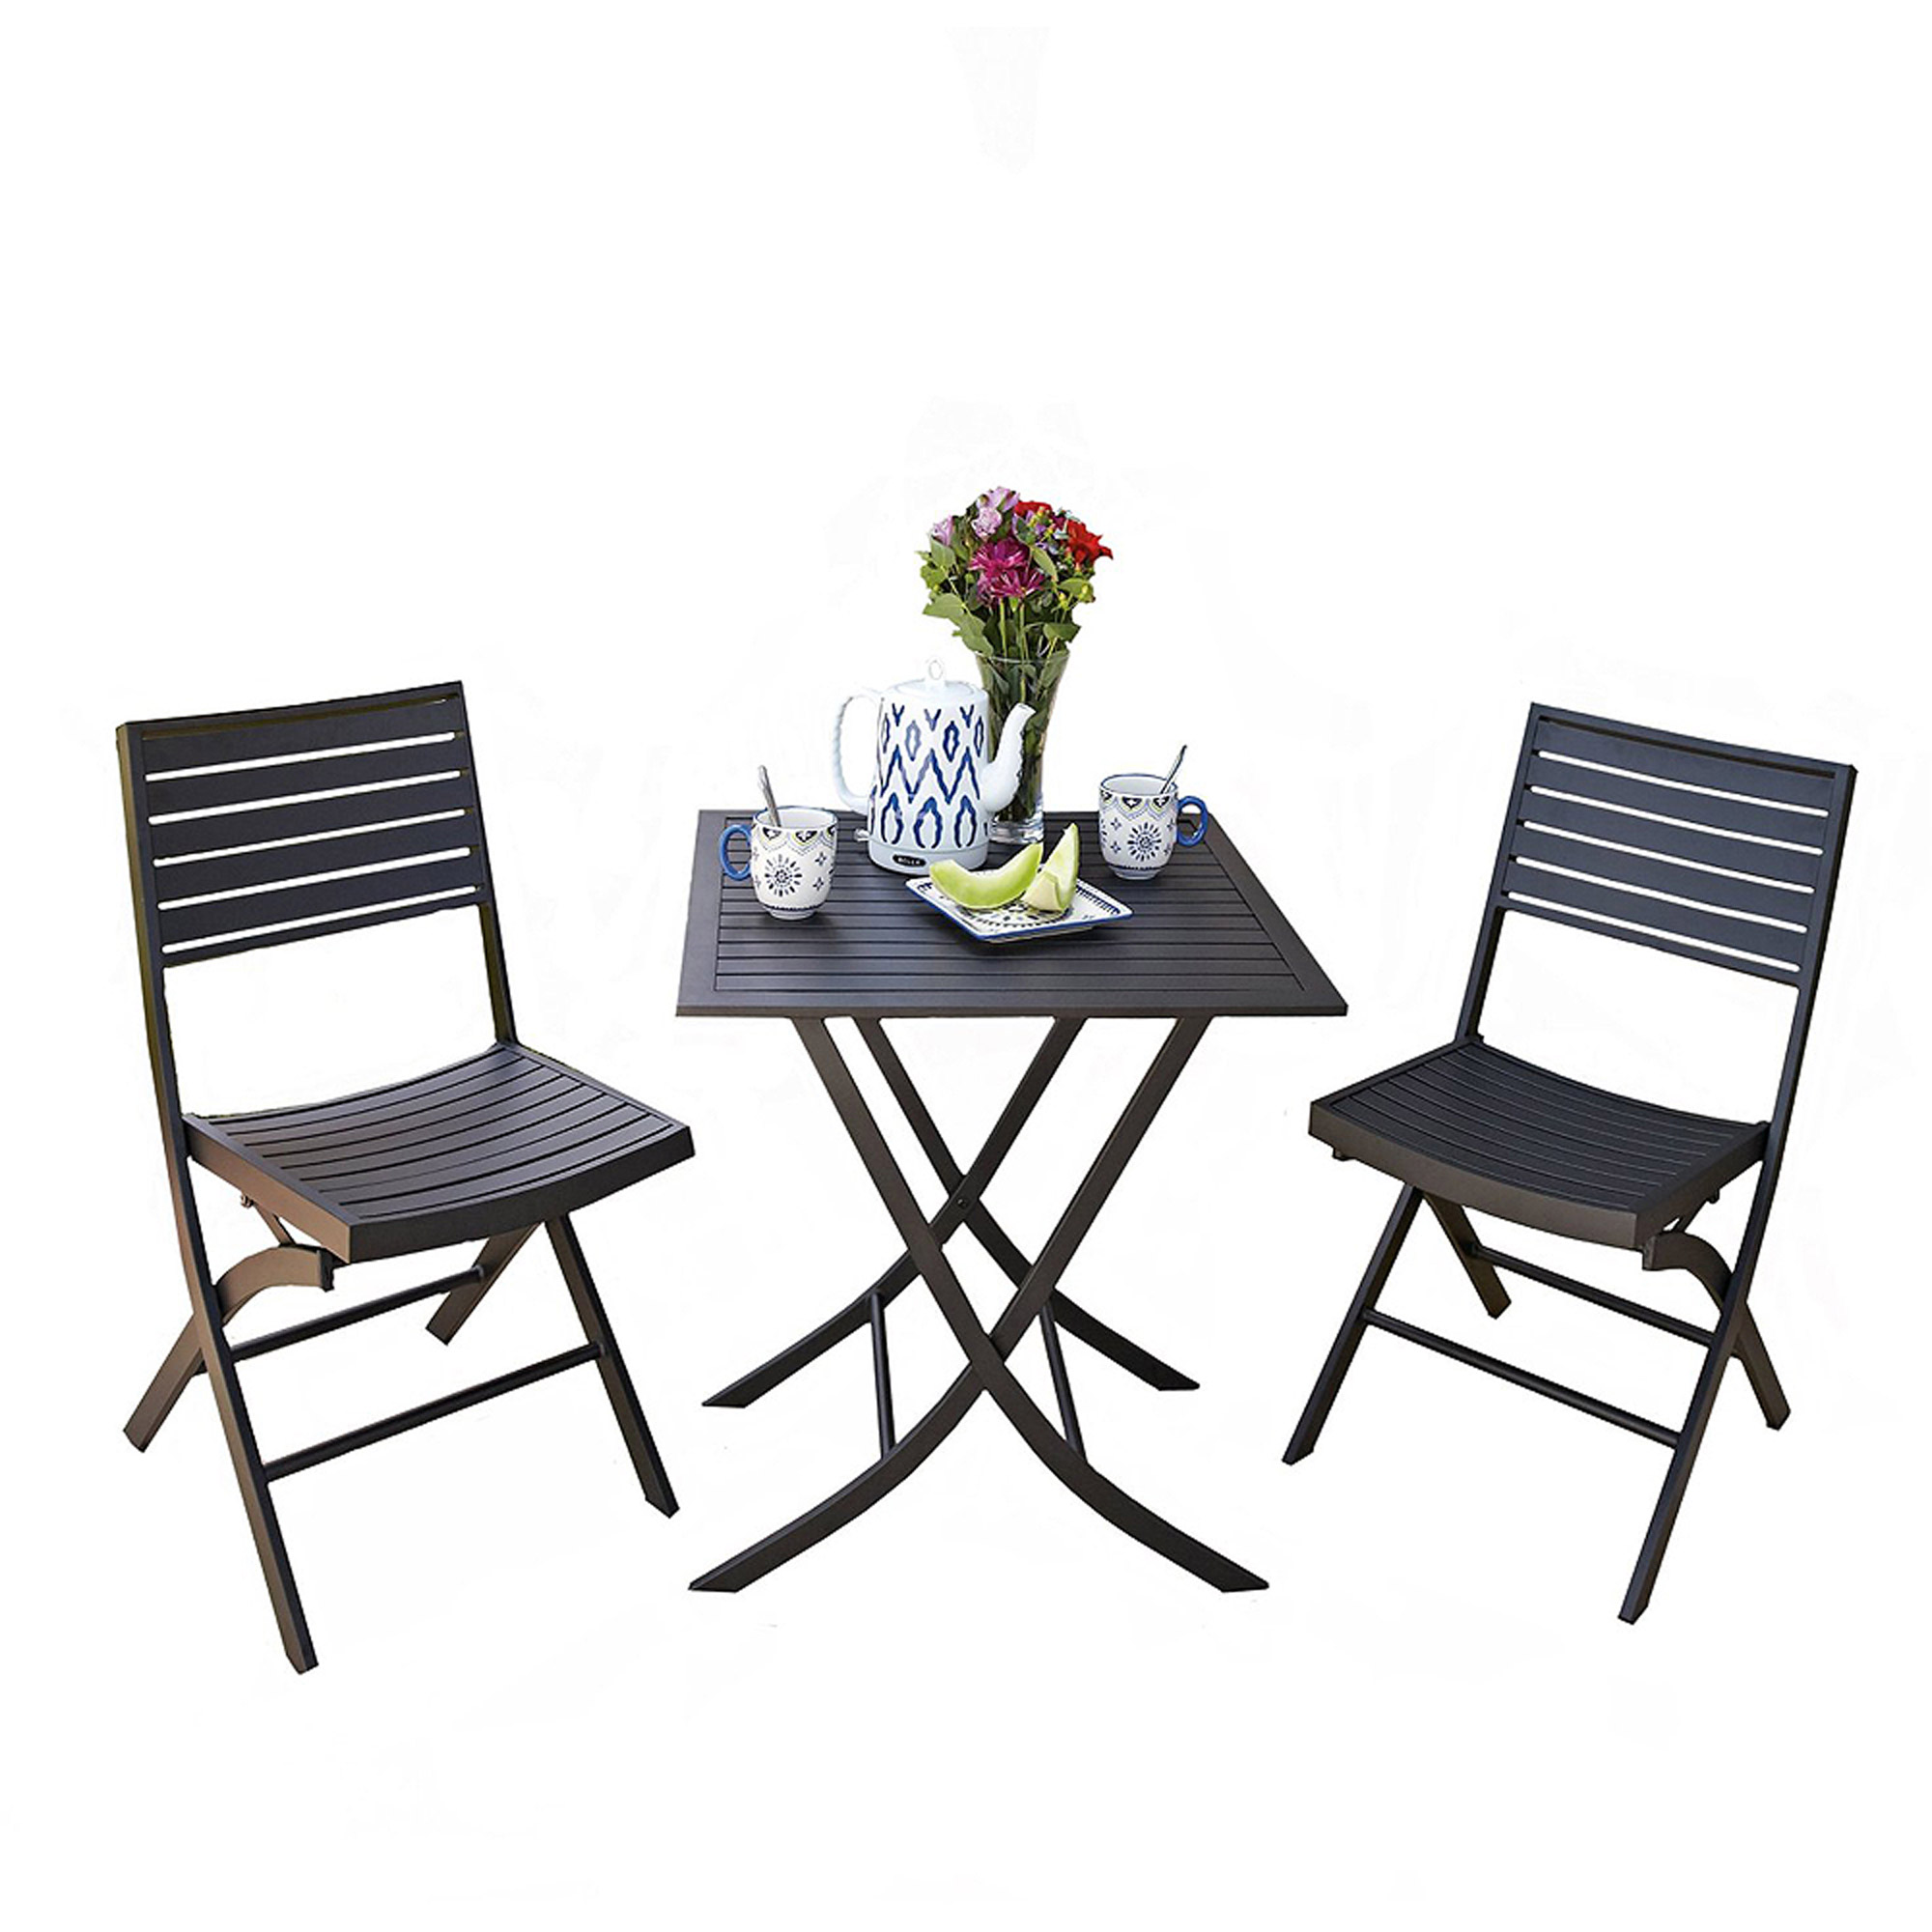 5 Piece Folding Chair And Table Set Target Chairs Amp Seating